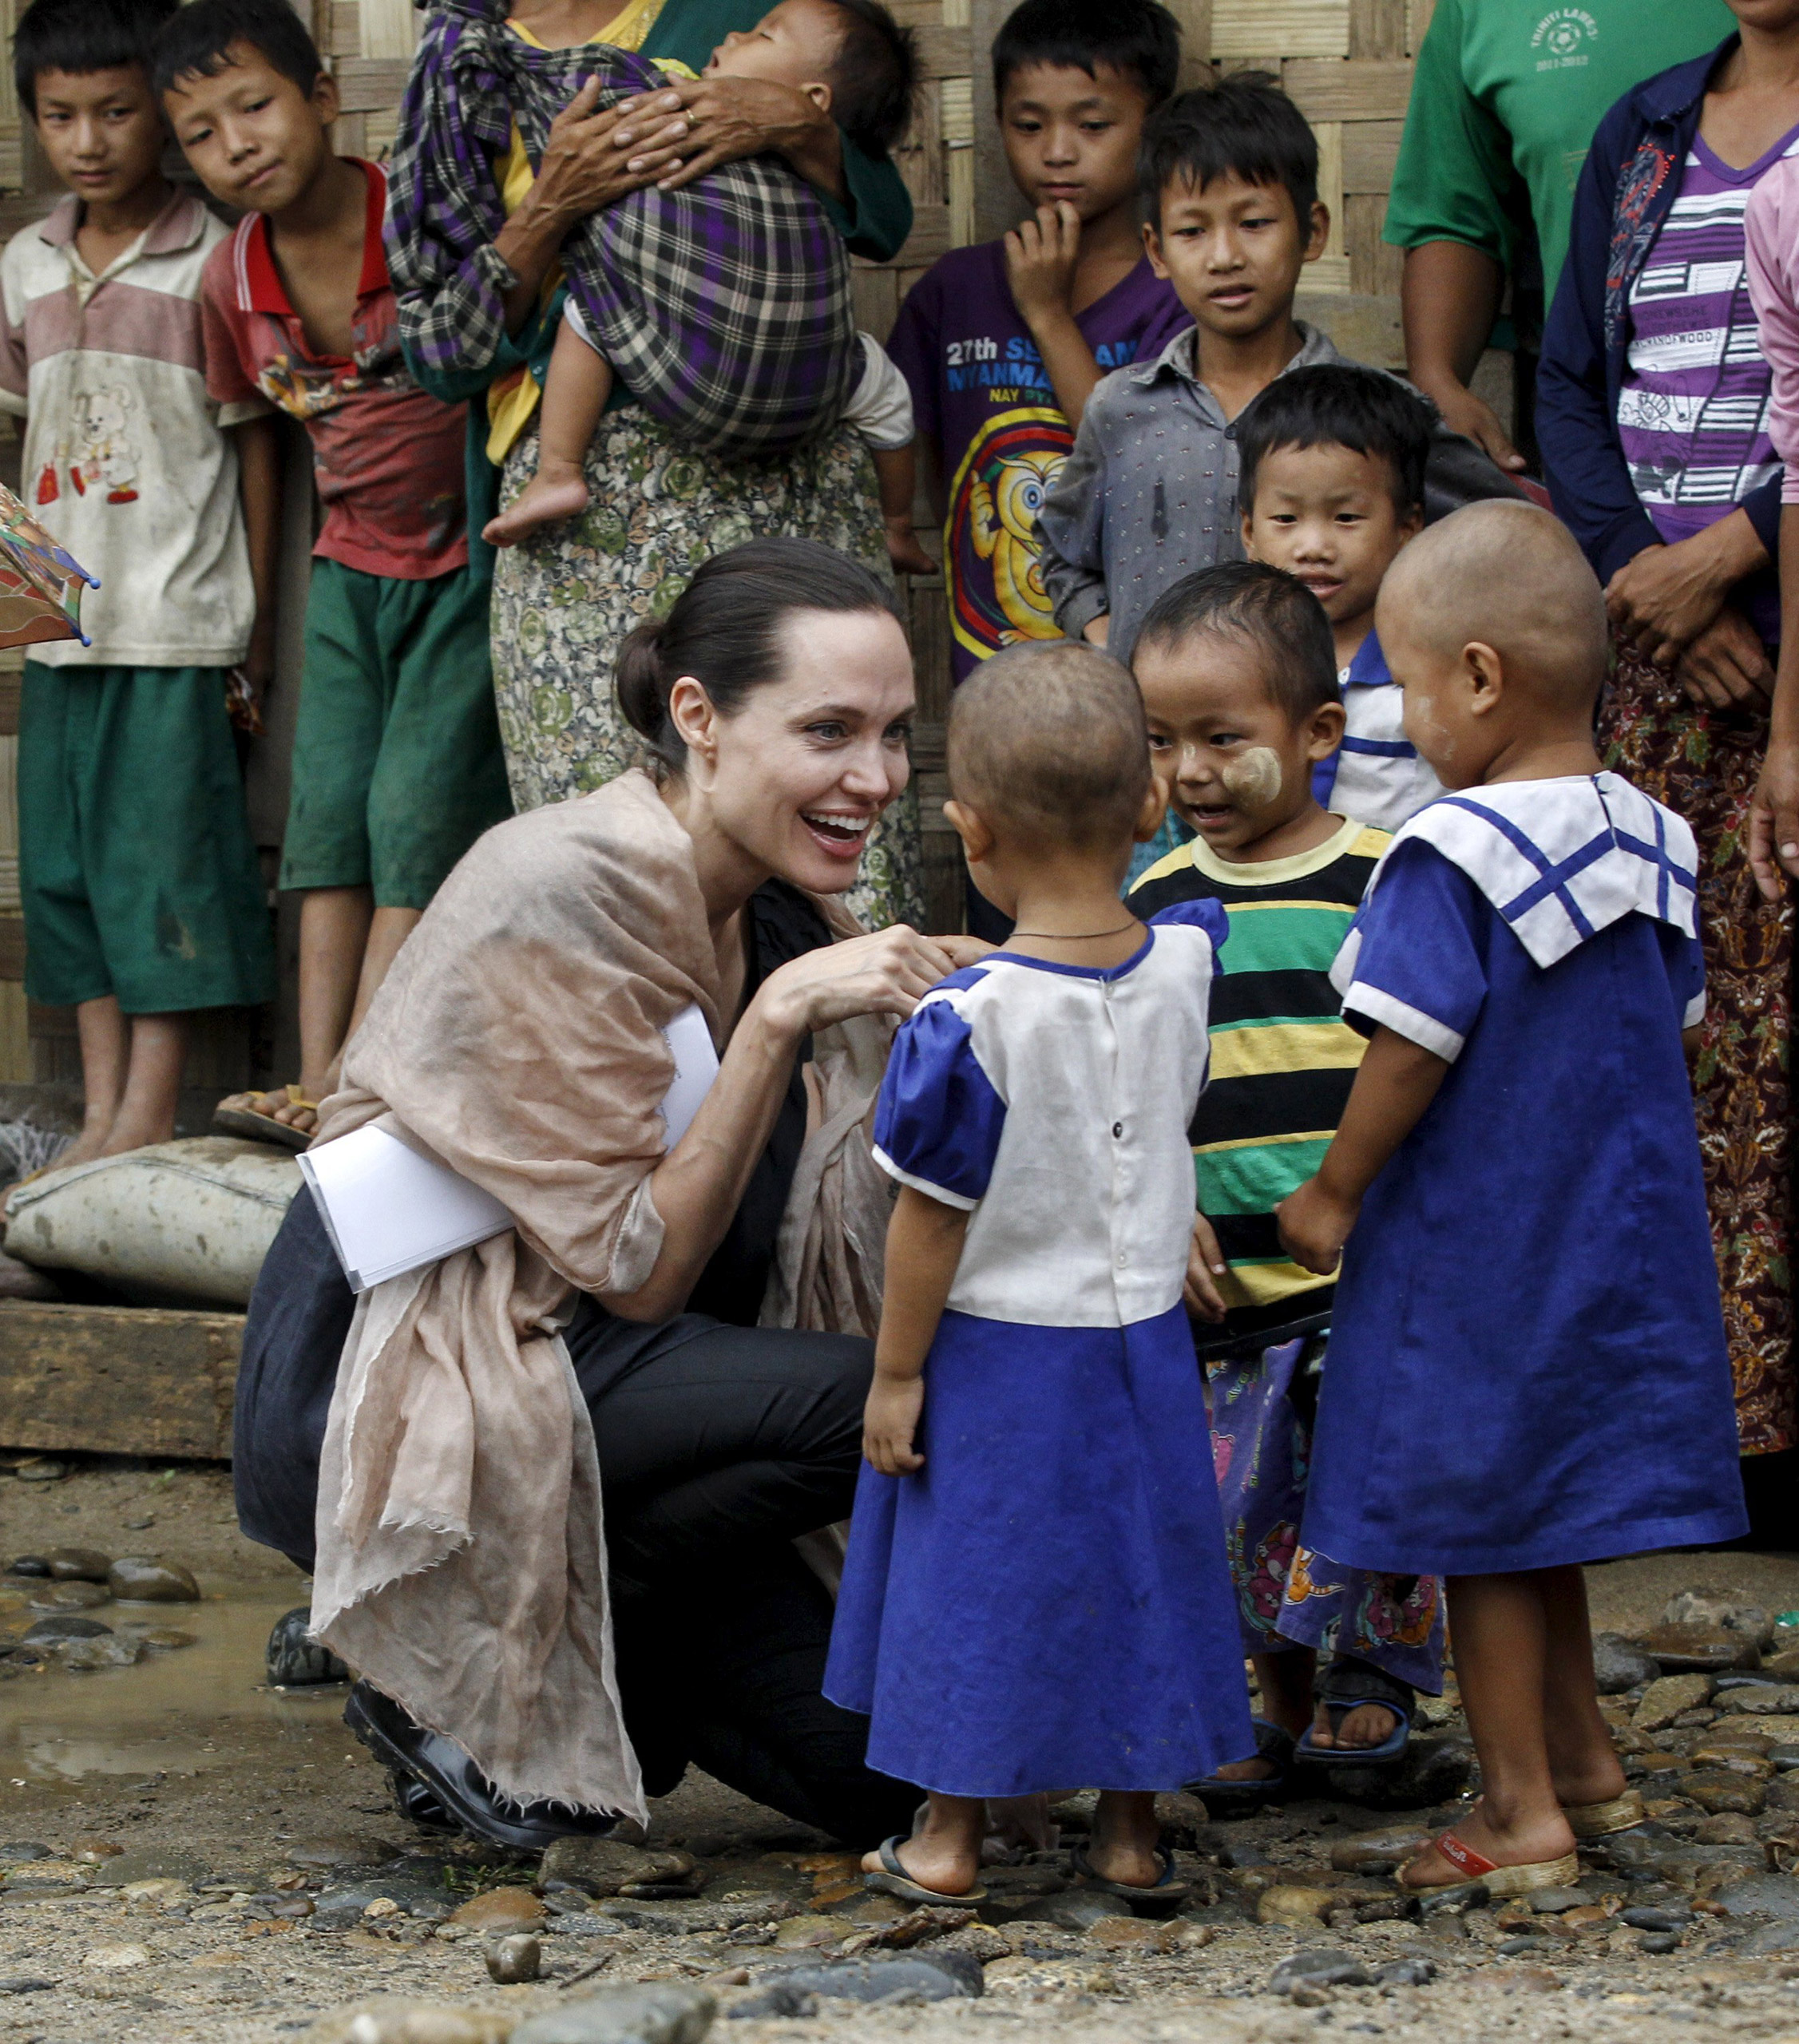 UNHCR special envoy Angelina Jolie Pitt shakes hands with Kachin ethnic refugee children as she visits Eight Miles Palana IDP camp in Myitkyina capital city of Kachin state, Myanmar on July 30, 2015.